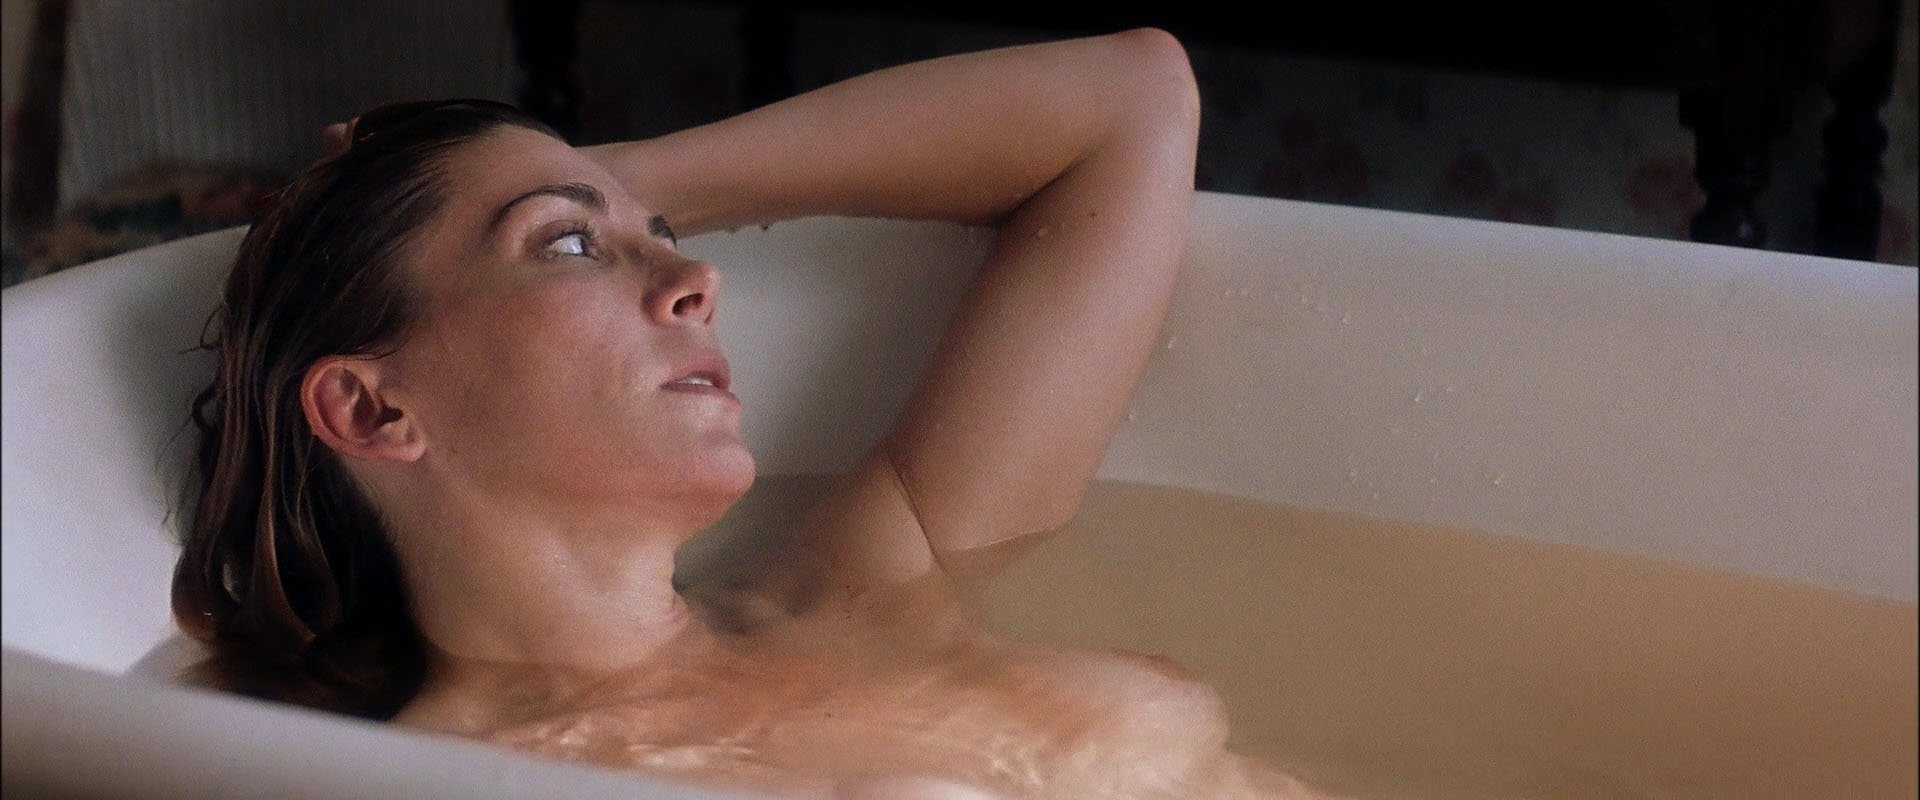 from Alvaro natasha richardson sexy video download